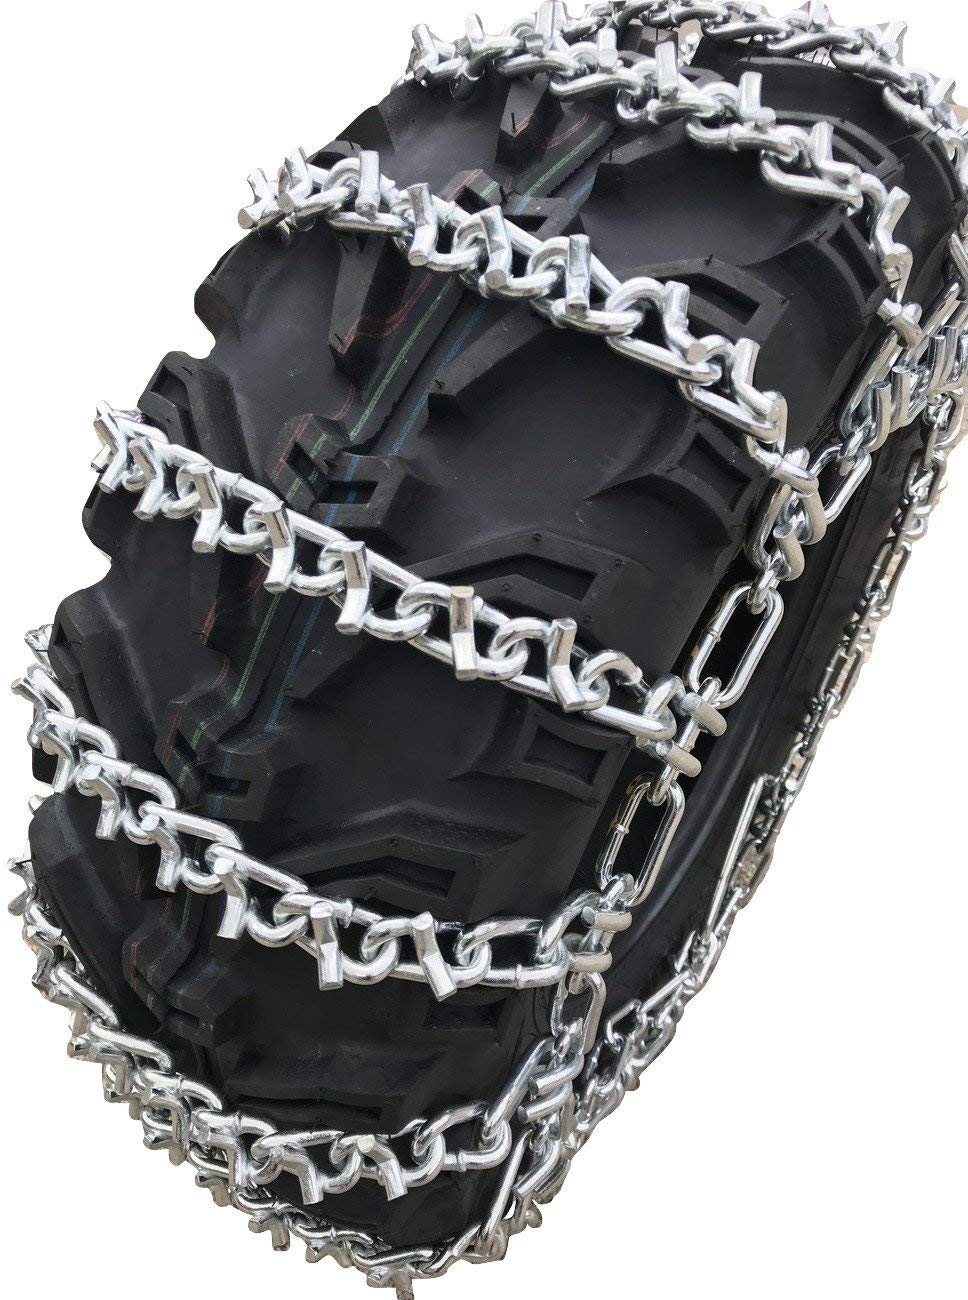 PAIR 2 Link TIRE CHAINS 18x9.5x8 fits many Honda ATC TRX ATV All-Terrain Vehicle